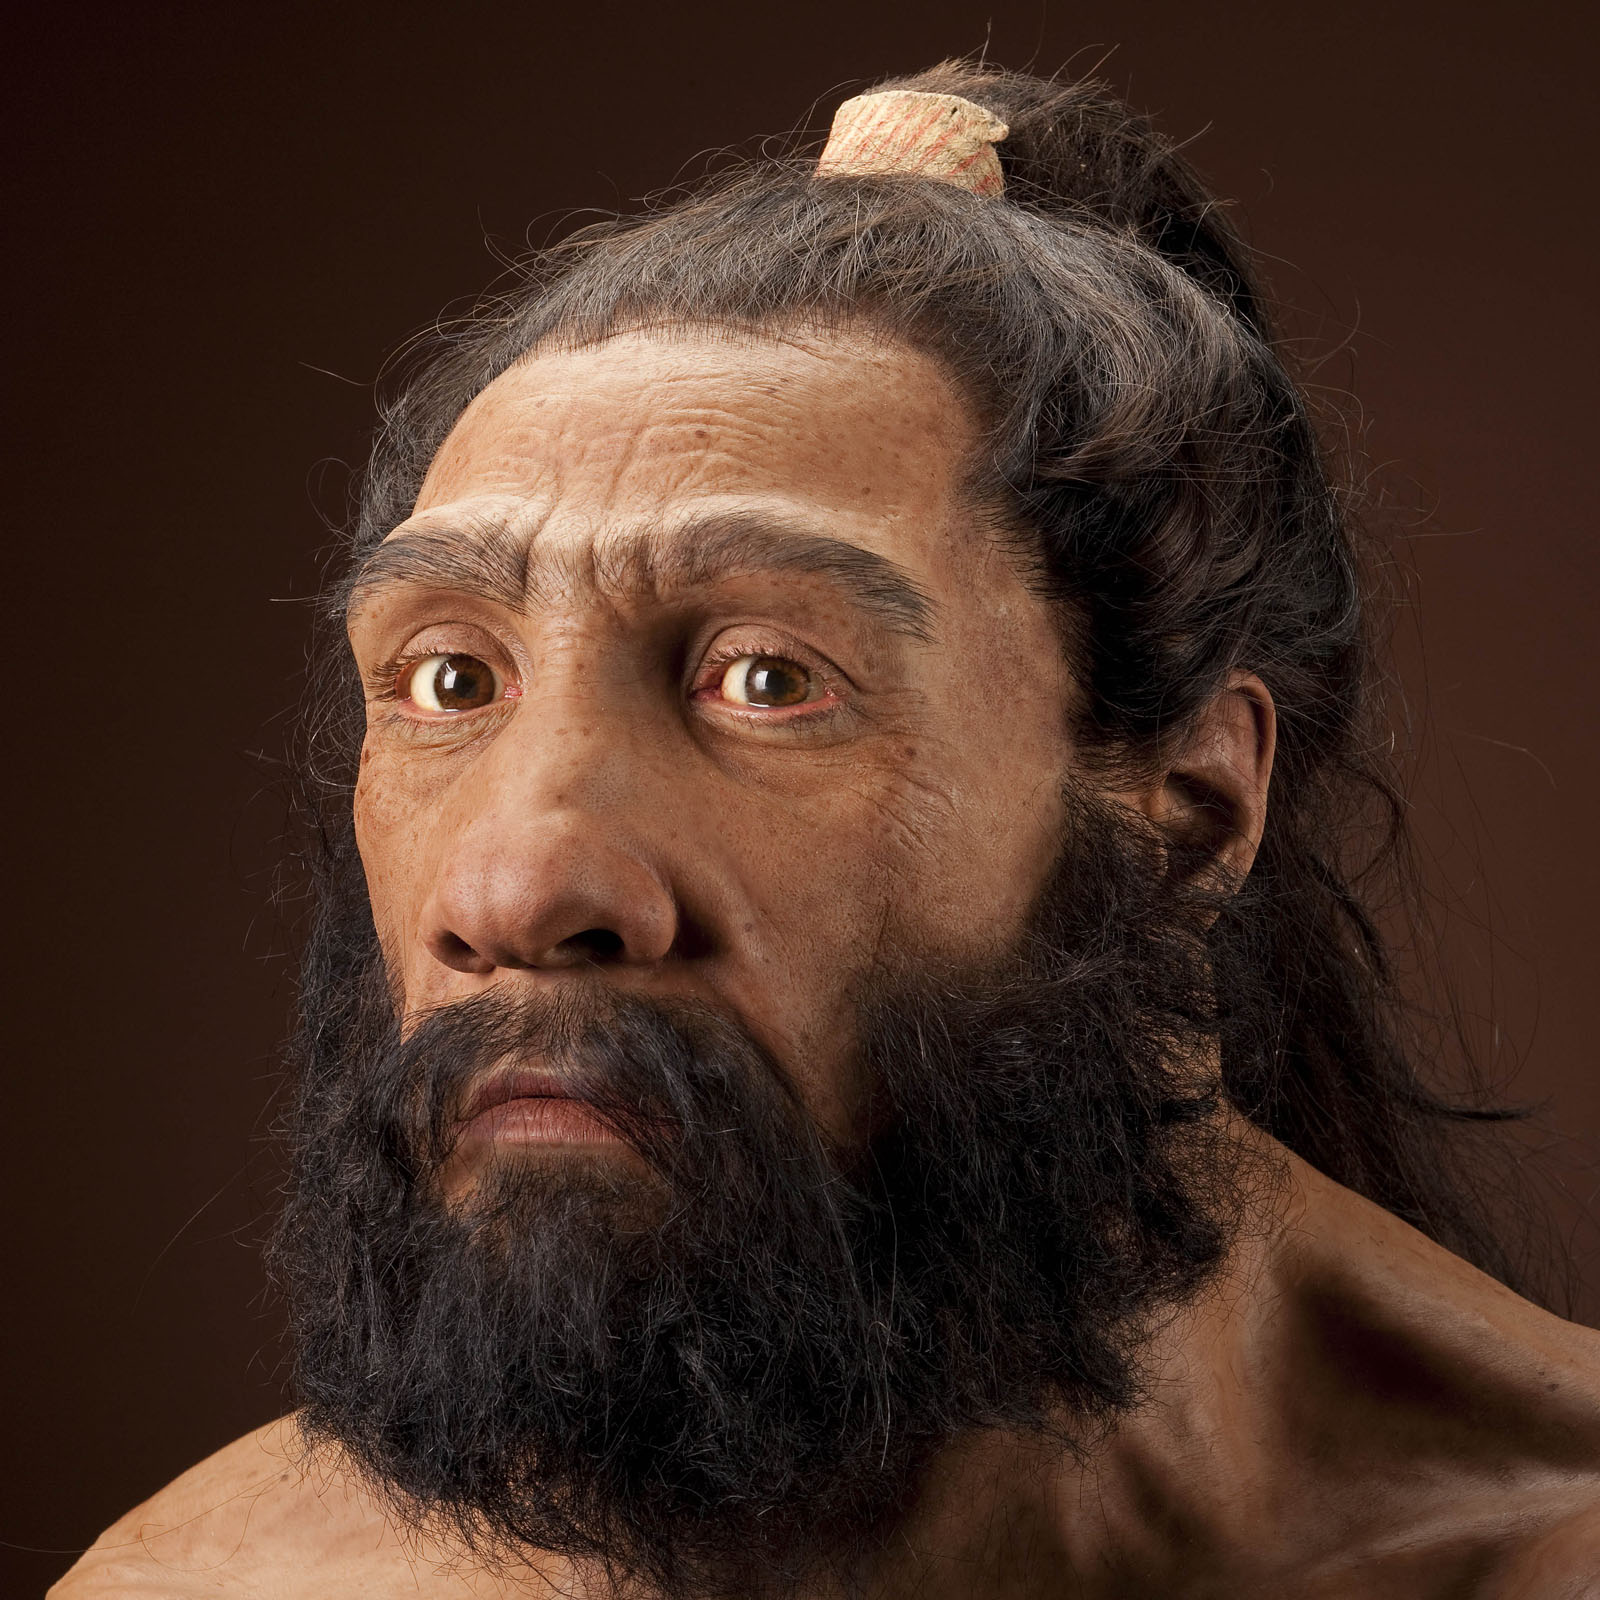 Reconstruction of close evolutionary cousins, Neanderthals, based on the skull from Shanidar 1, Iraq.  Artwork: John Gurche. Image credit: Human Origins Program, Smithsonian.